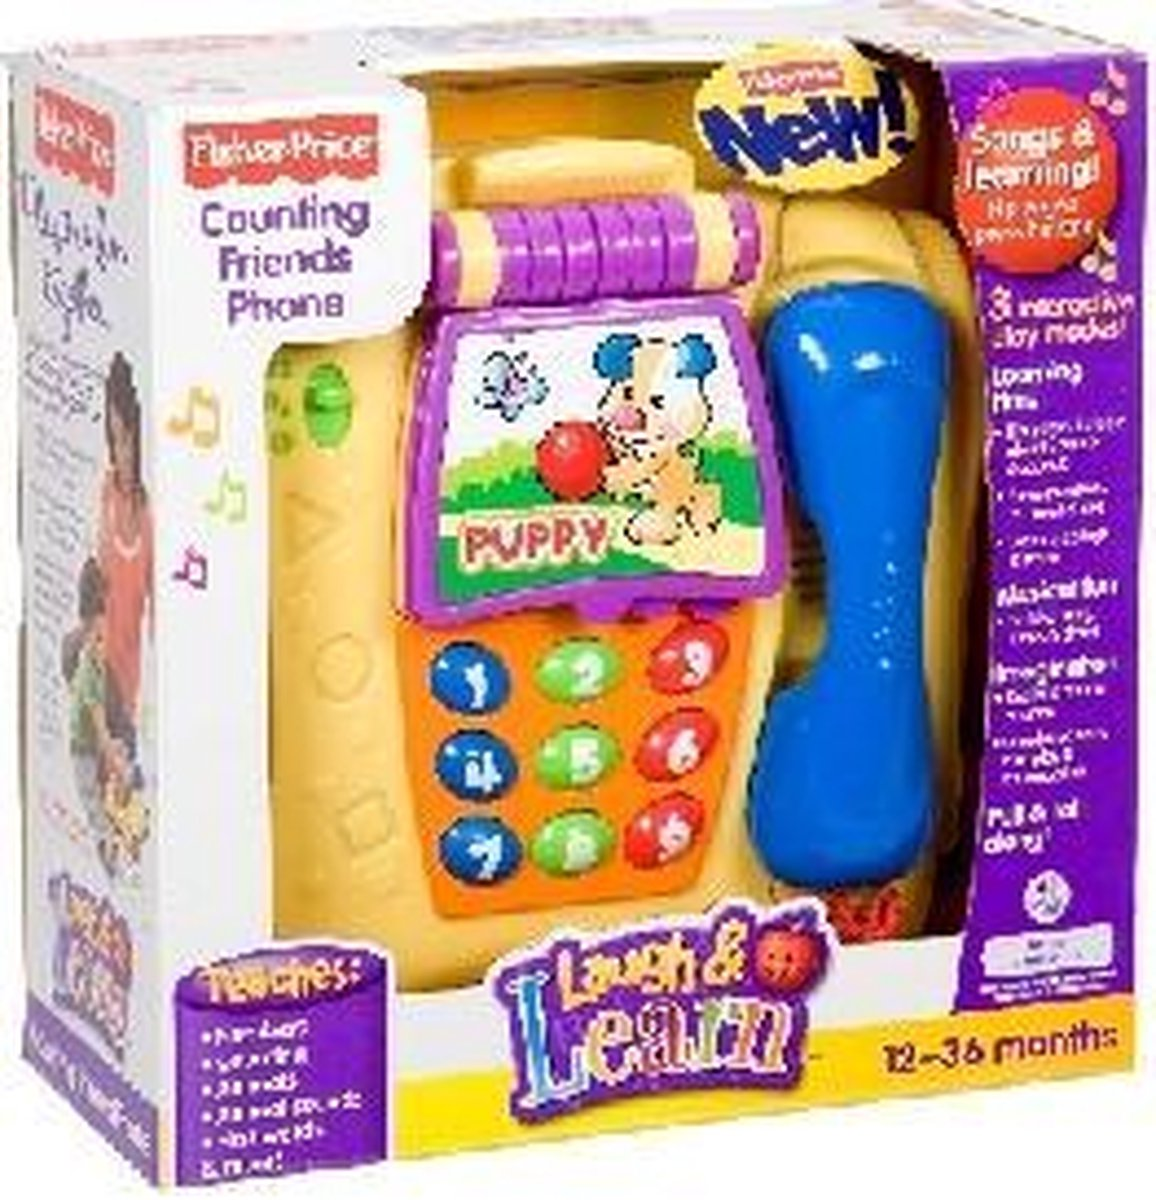 Fisher Price Counting Friends Telefoon